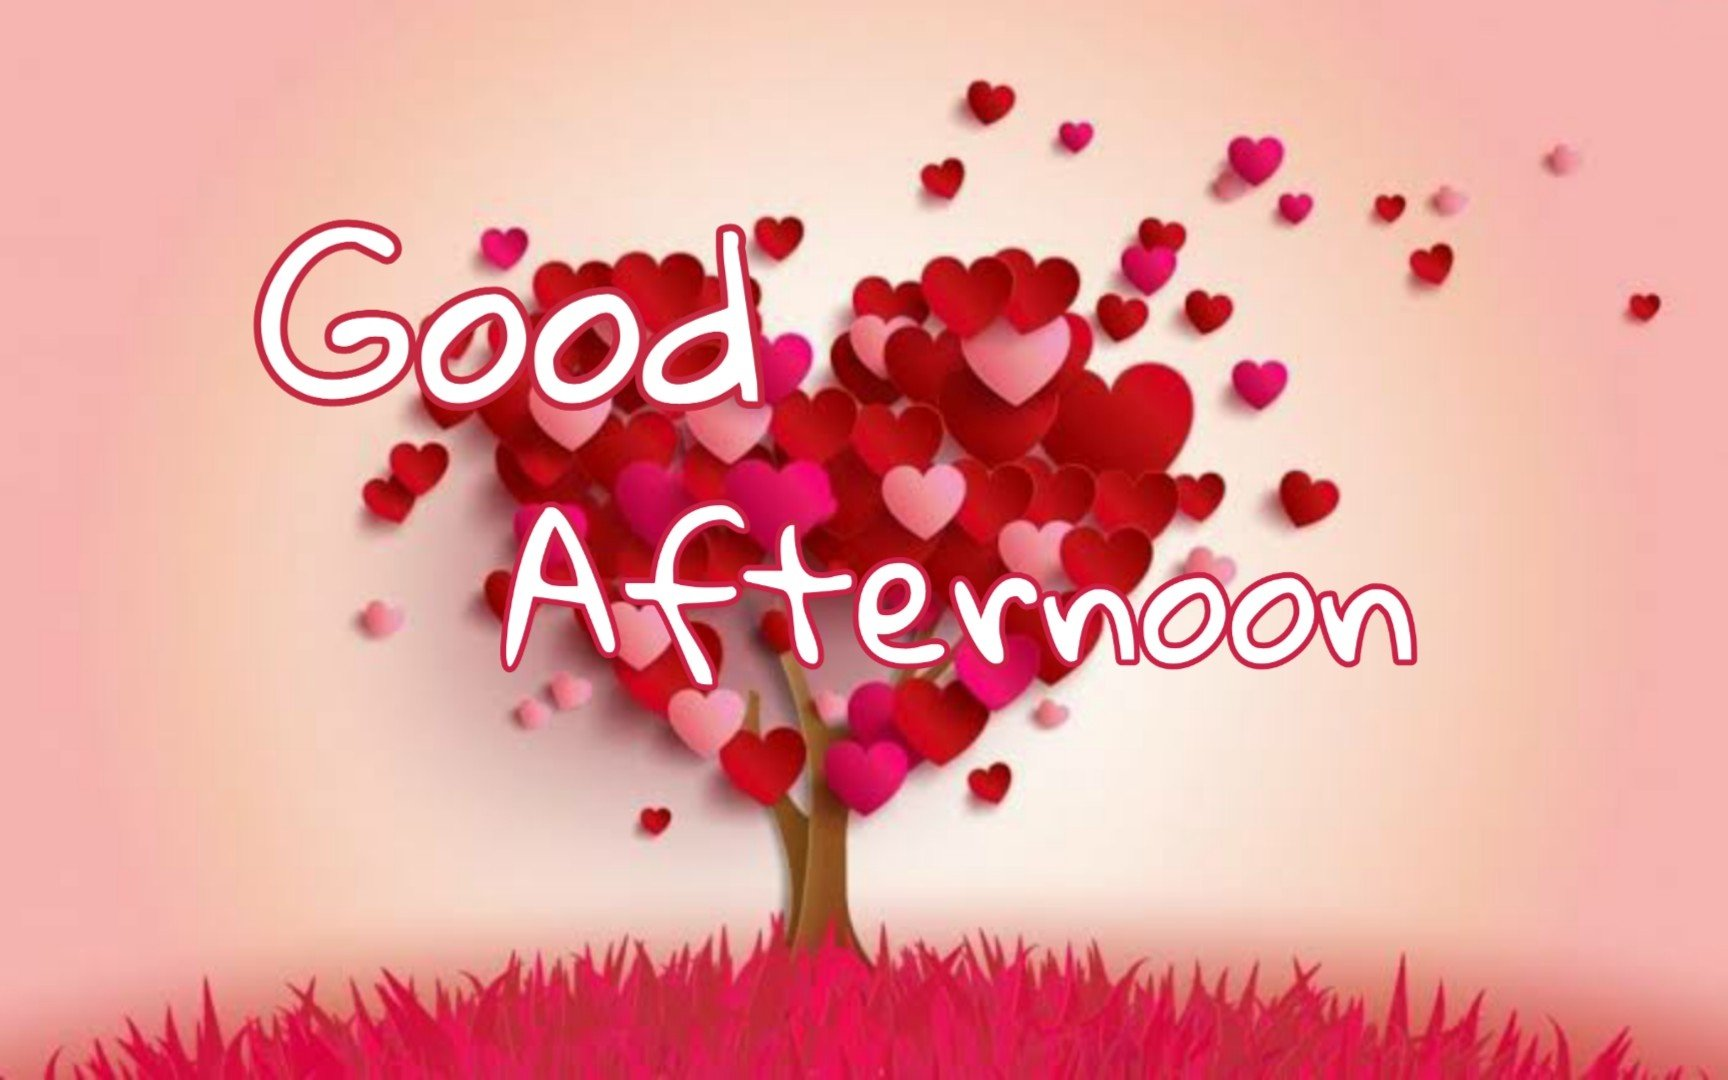 50+ Good Afternoon SMS Wishes, Messages with Images